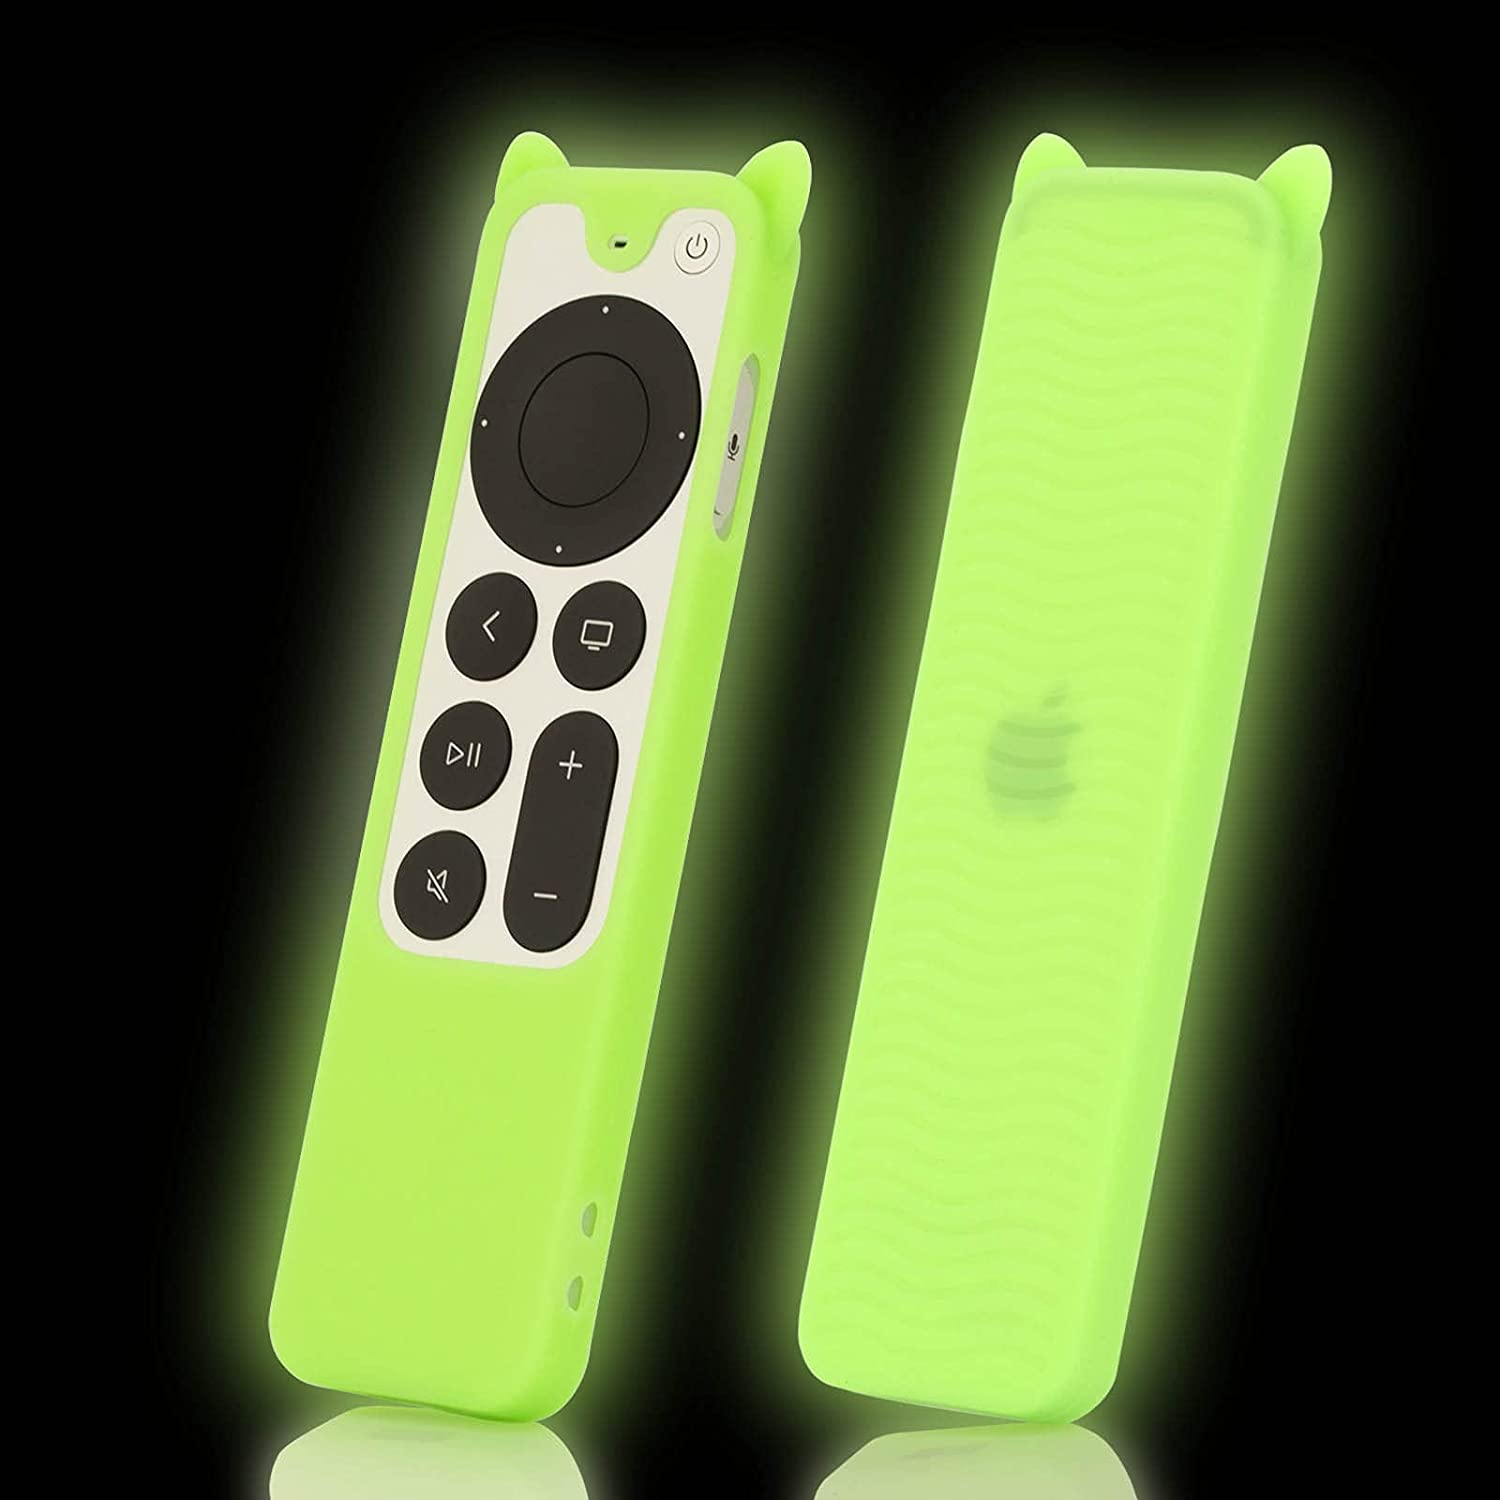 Case Cover Replacement for New 4K Apple TV 2021 Remote Control Series 6 Generation / 6th Gen, Green Cute Cat Ear Silicone Siri 2nd Skin Glow in Dark with Lanyard - LEFXMOPHY